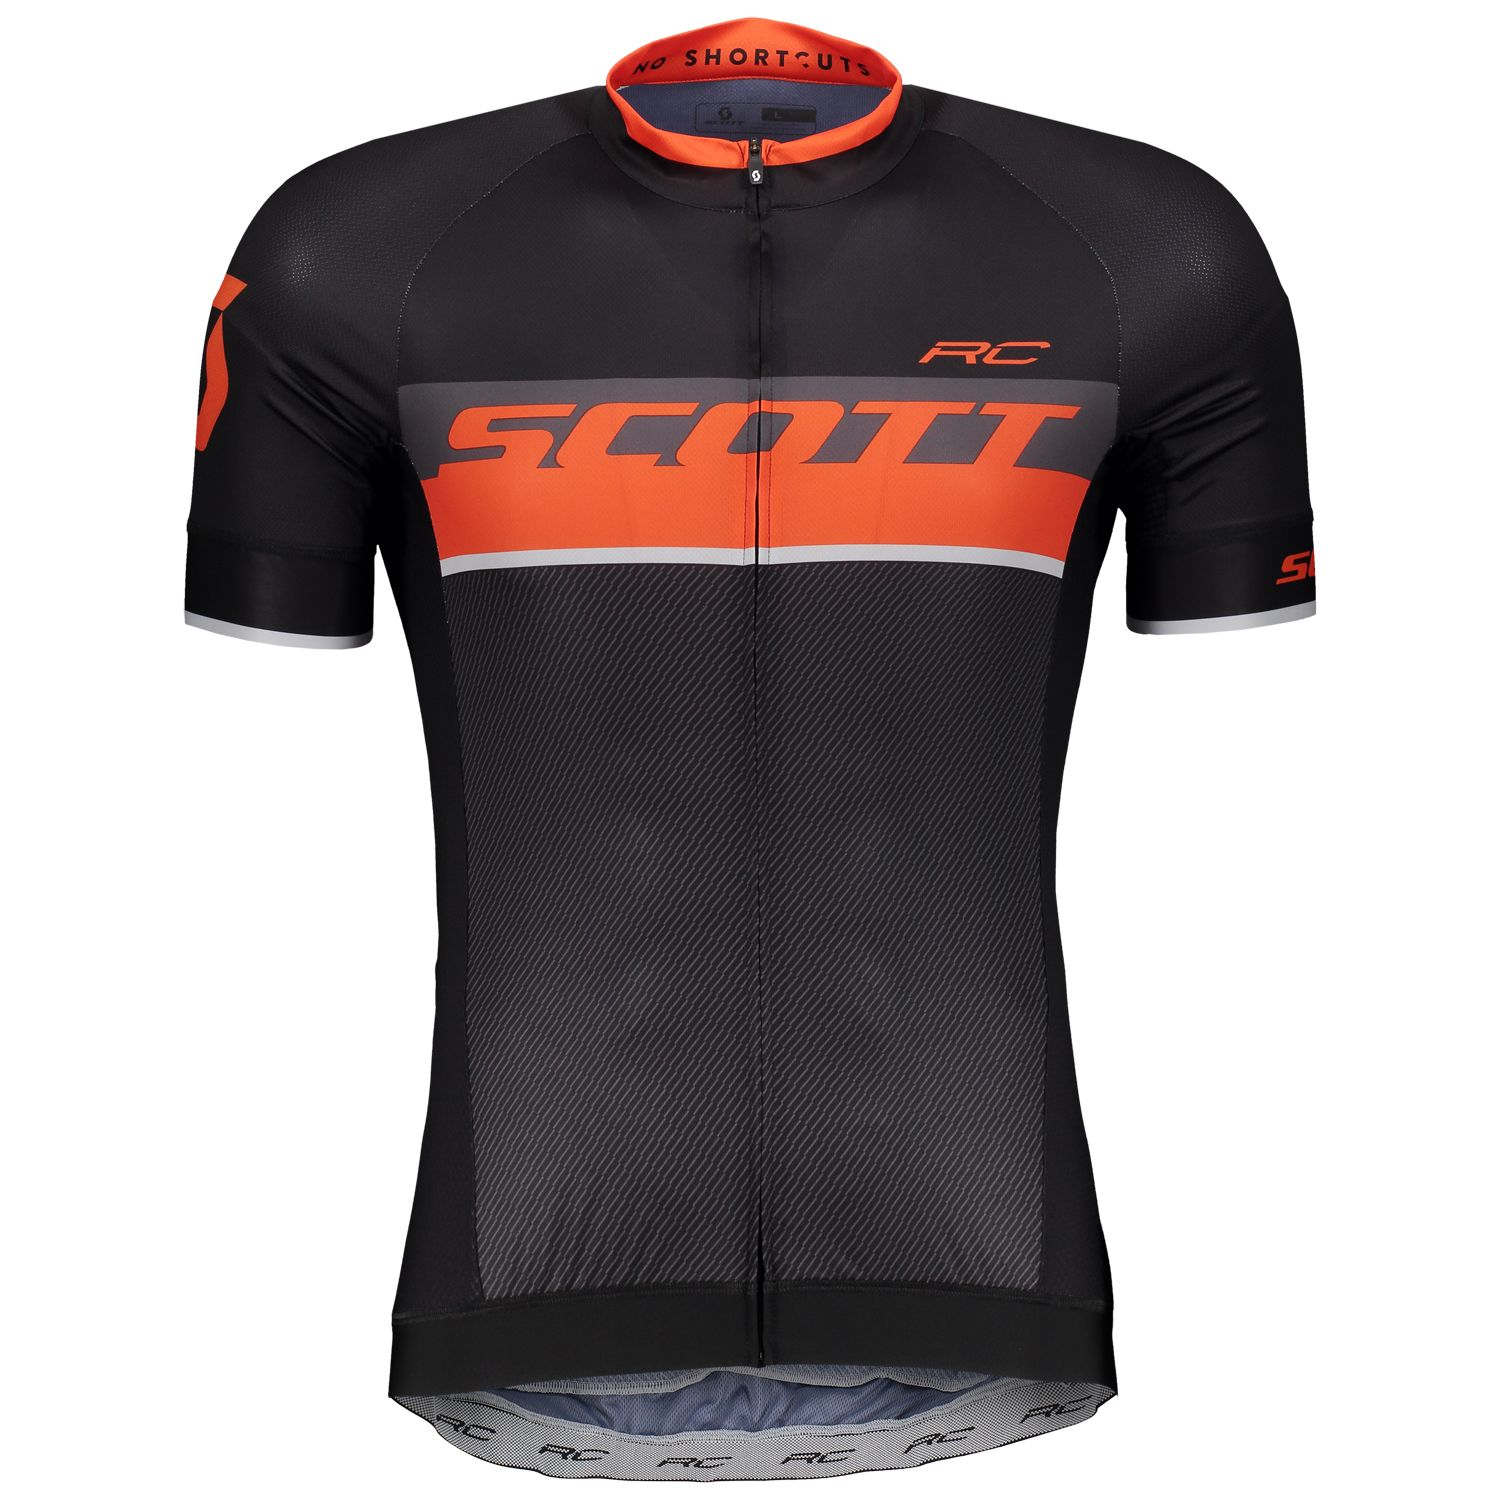 2b976cd04 ... short sleeve cycling jersey black tangerine orange (264821). Previous